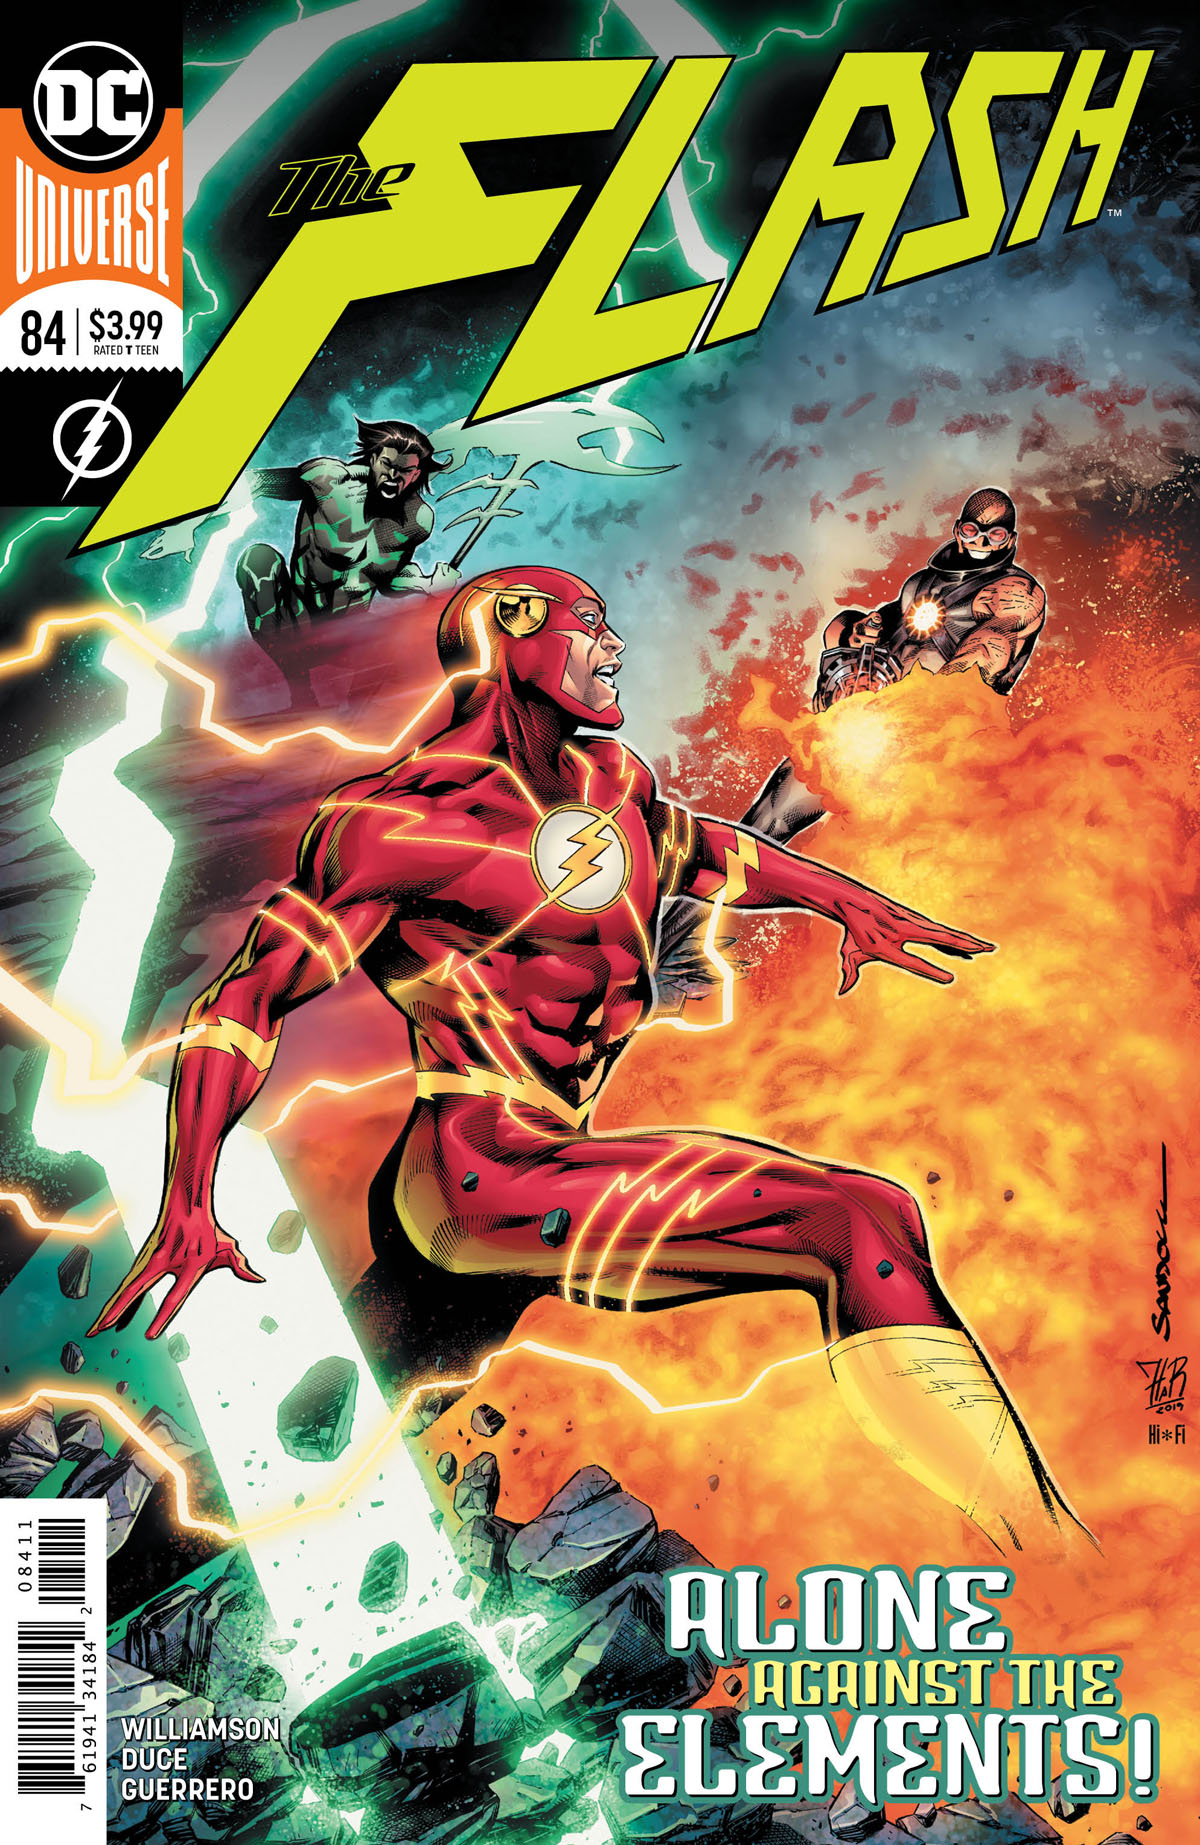 The Flash #84 cover